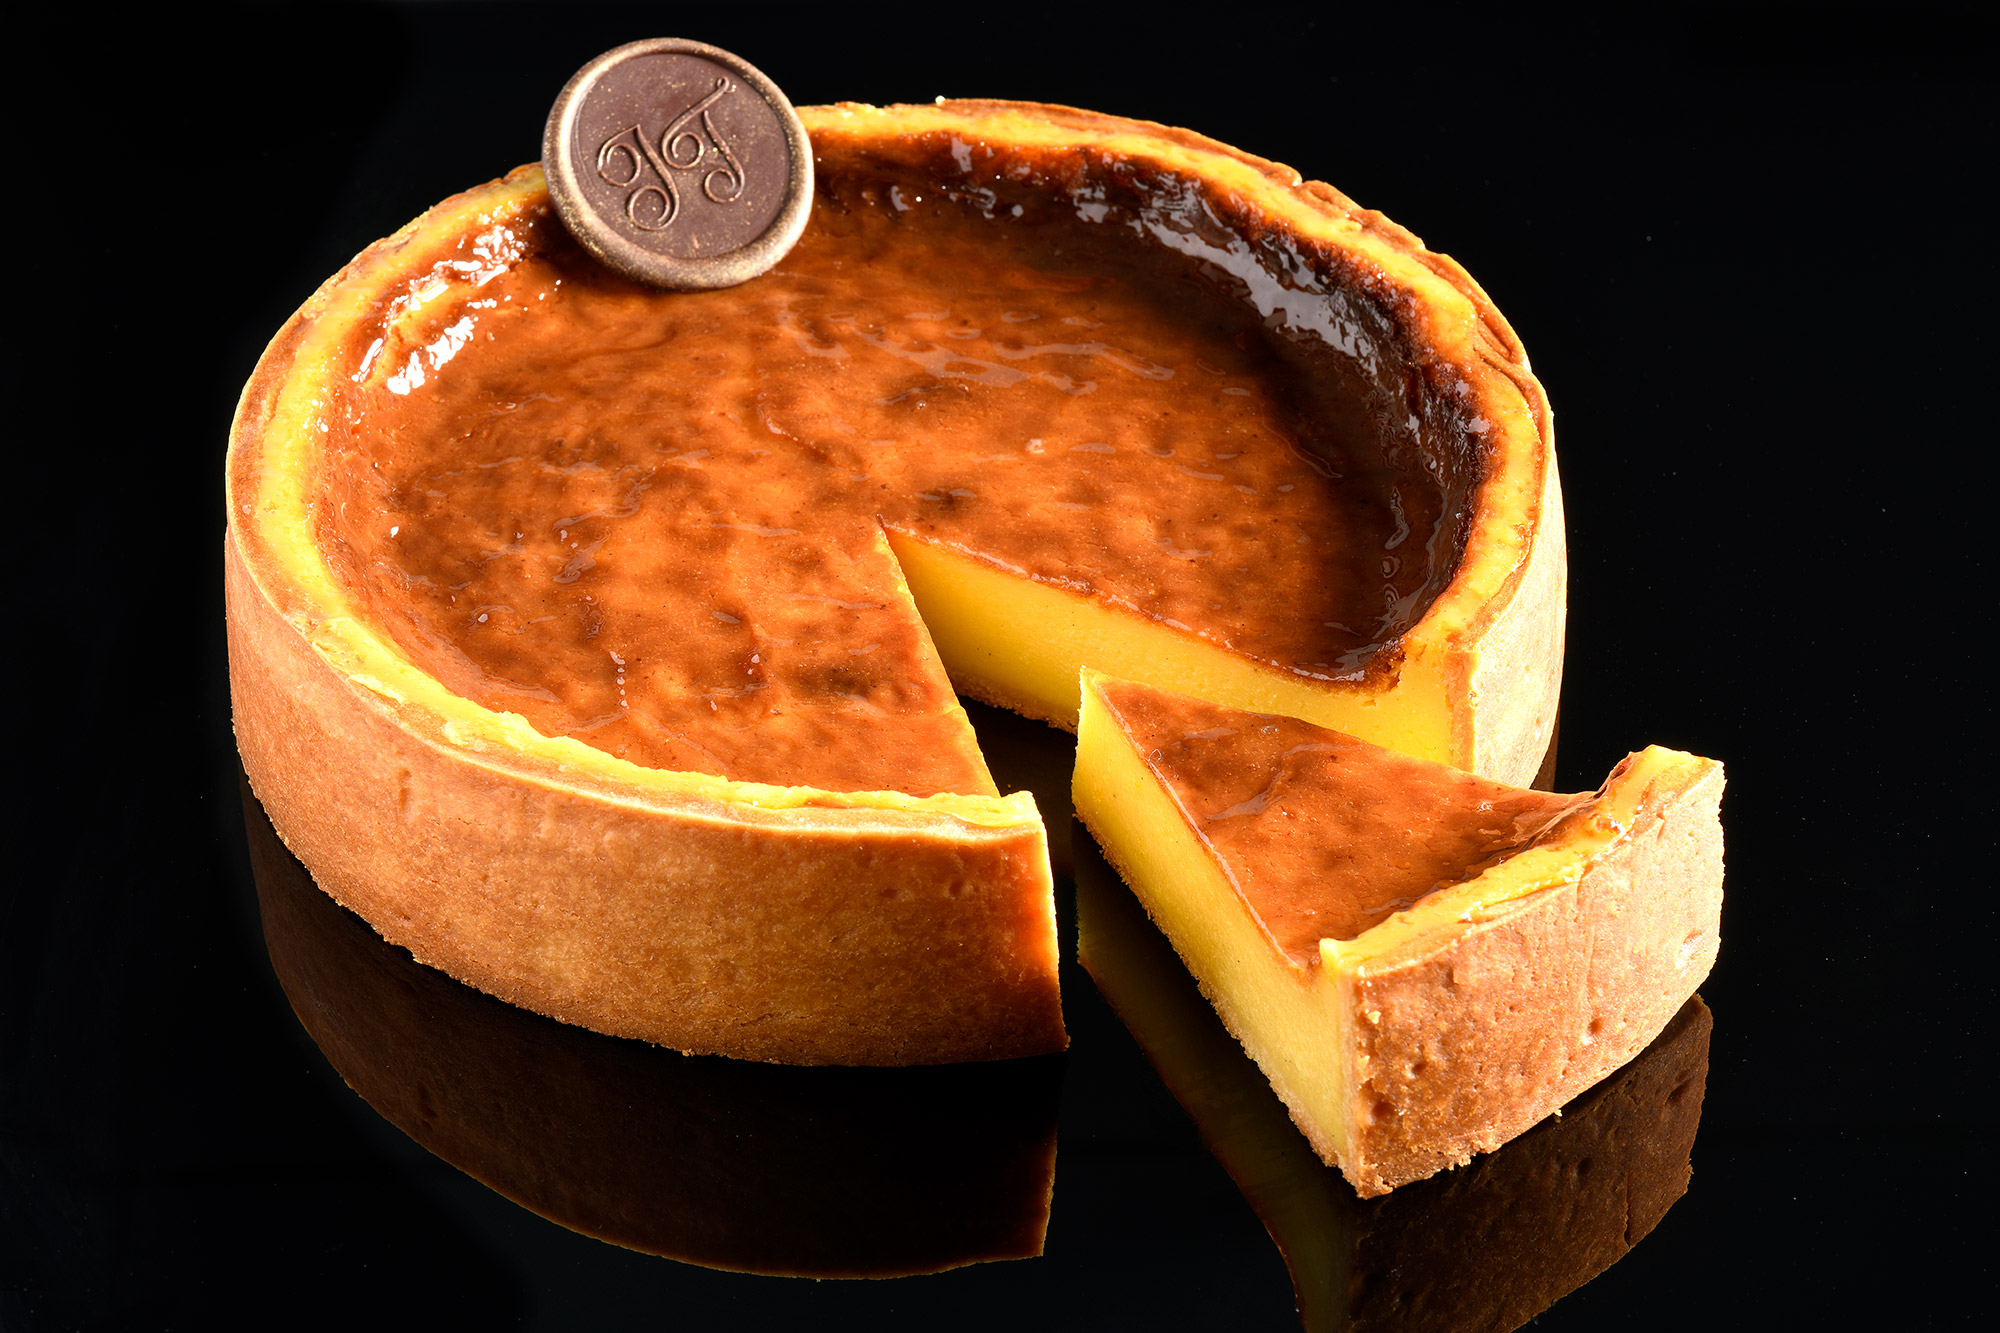 Photo d'un flan sur fond noir